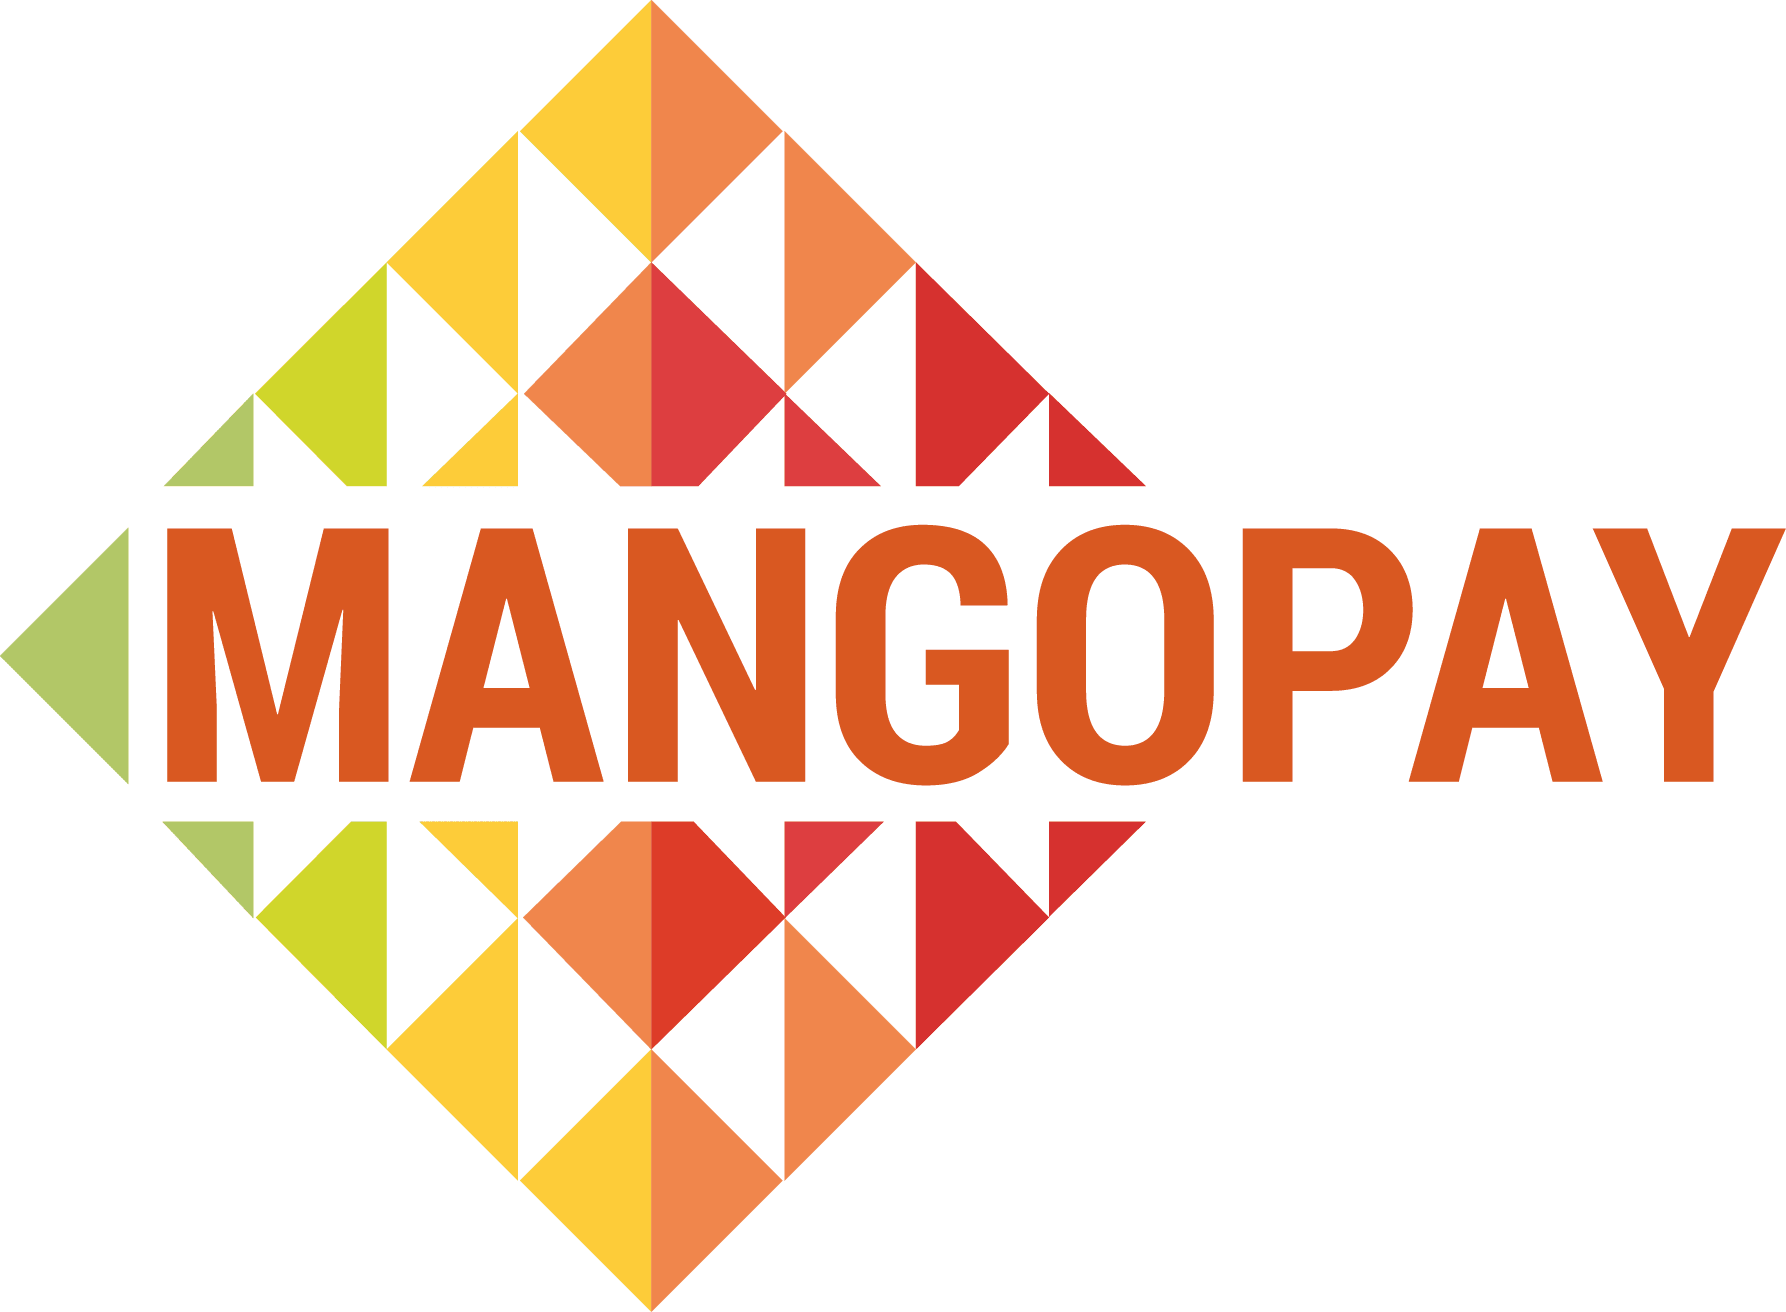 MANGOPAY provides an end-to-end payment solution to manage third-party transactions, designed for marketplaces, crowdfunding platforms and fintechs. Thanks to its white-label API, clients can set up custom payment flows to optimise their business model, in full security and with flexibility over users, e-wallets and commissions. Serving the specialist entrepreneurial needs of European markets, MANGOPAY handles various currencies and specific payment methods, escrows funds indefinitely, and verifies users in compliance with local regulations.